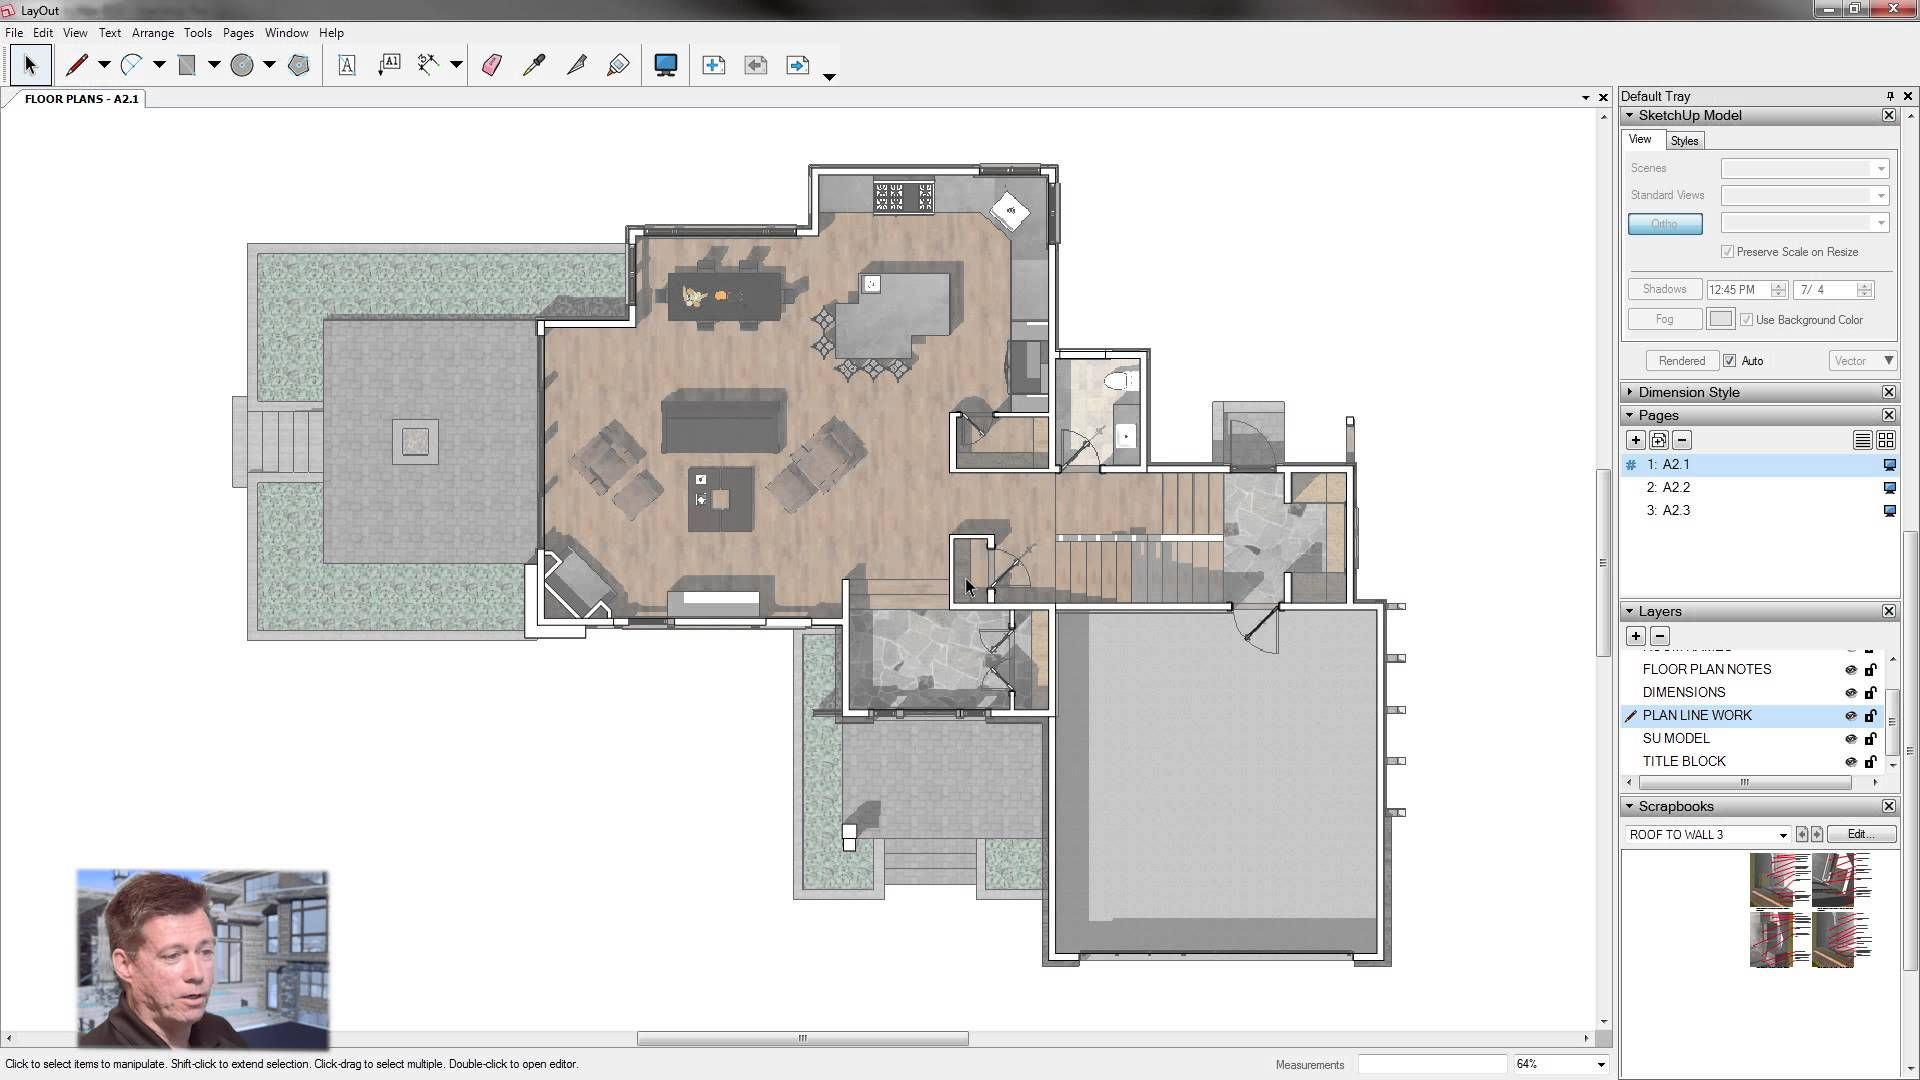 Sketchup For Construction Documentation Layout Floor Plans Template Floor Plans Layout Construction